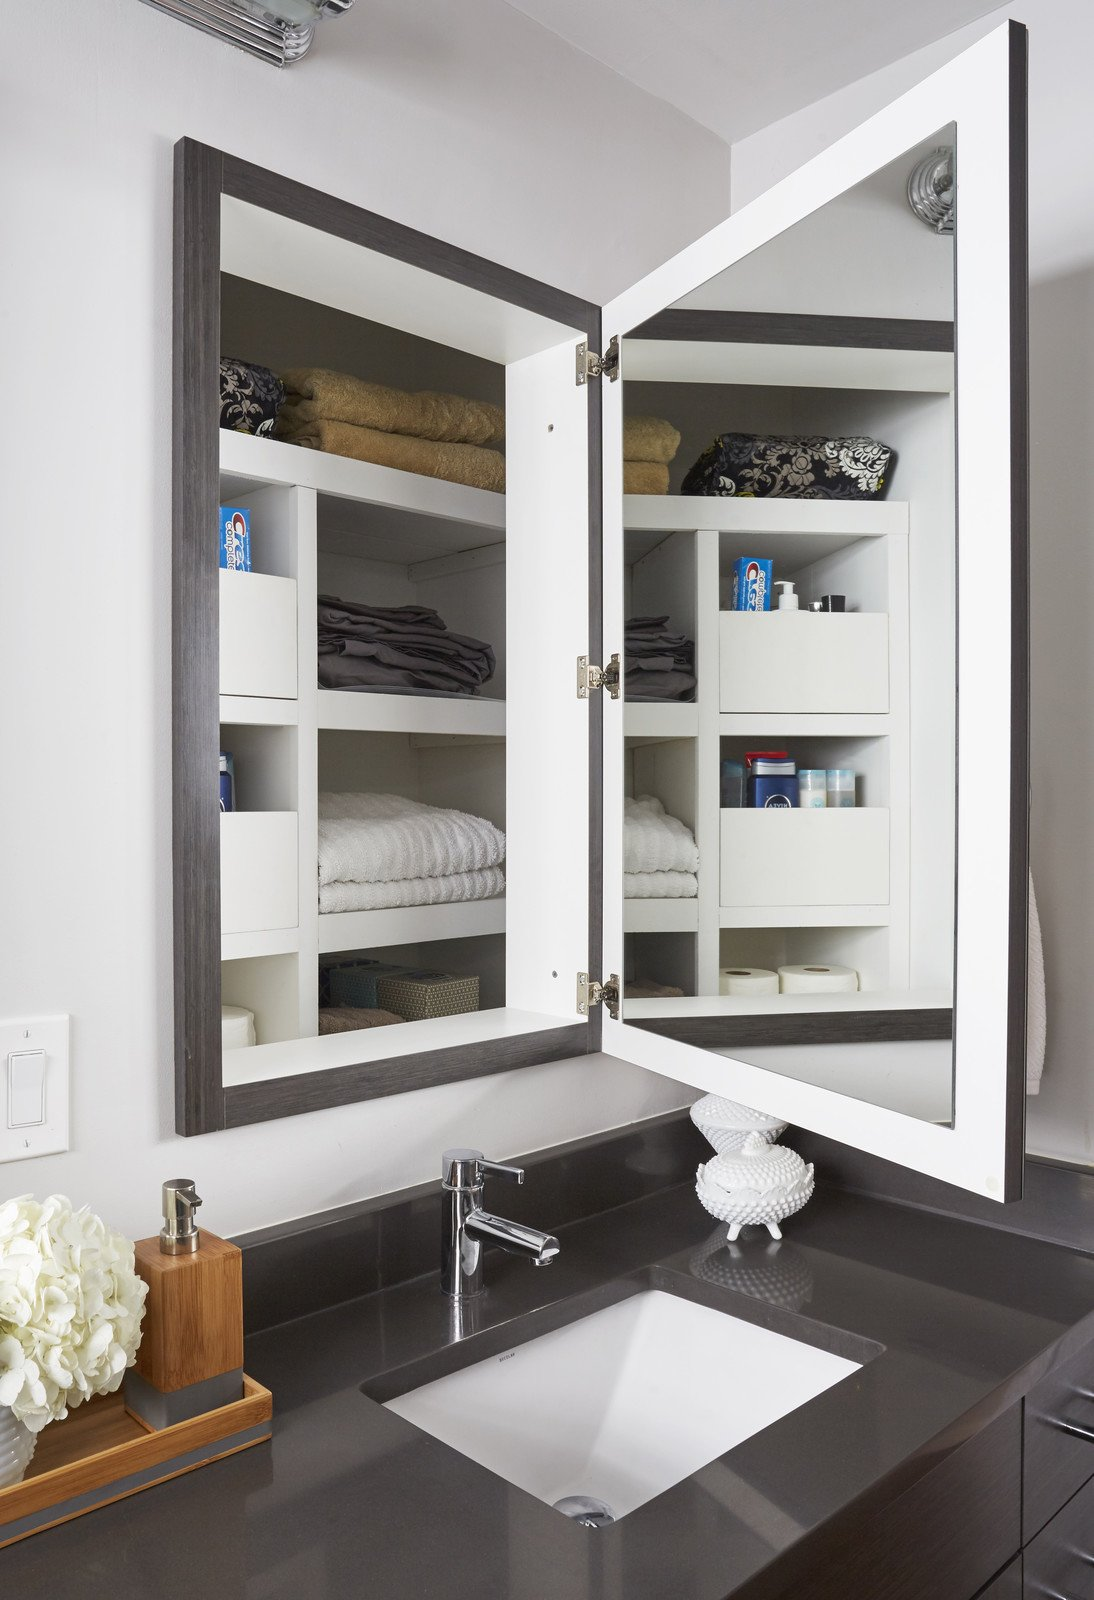 Photo caption: This renovation preserved the depth behind the medicine cabinets for linen storage.  Photo 10 of 10 in 10 Clever Ways to Sneak Storage Into Your Renovation